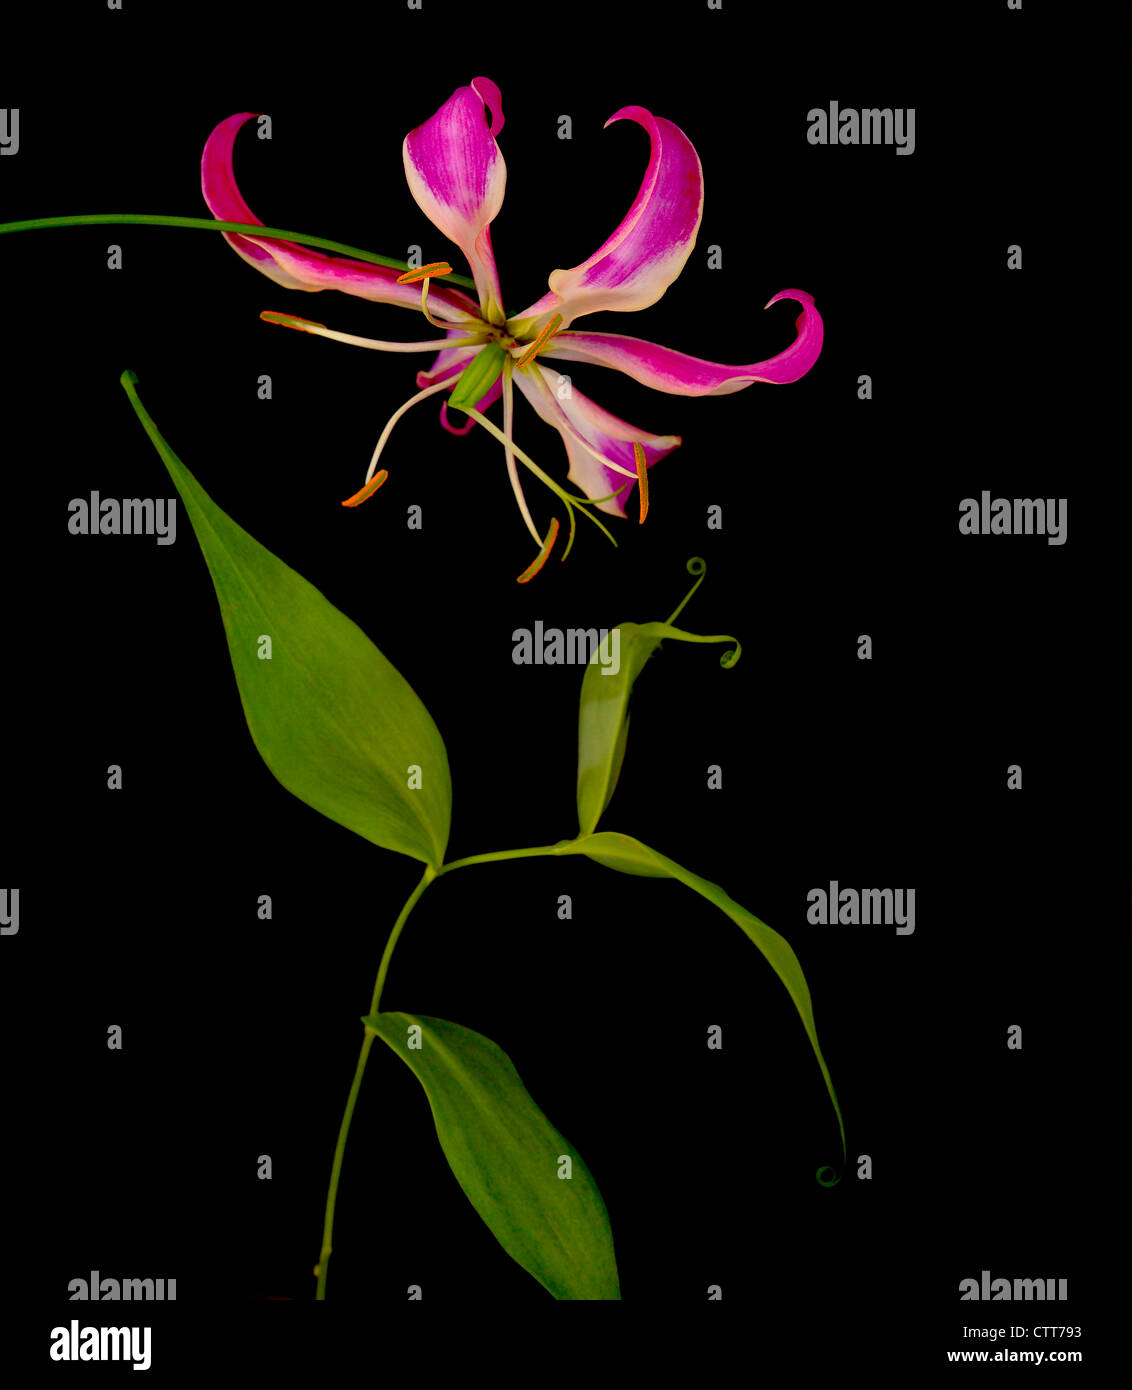 Gloriosa superba 'Rothschildiana', Gloriosa lily, Pink, Black. - Stock Image